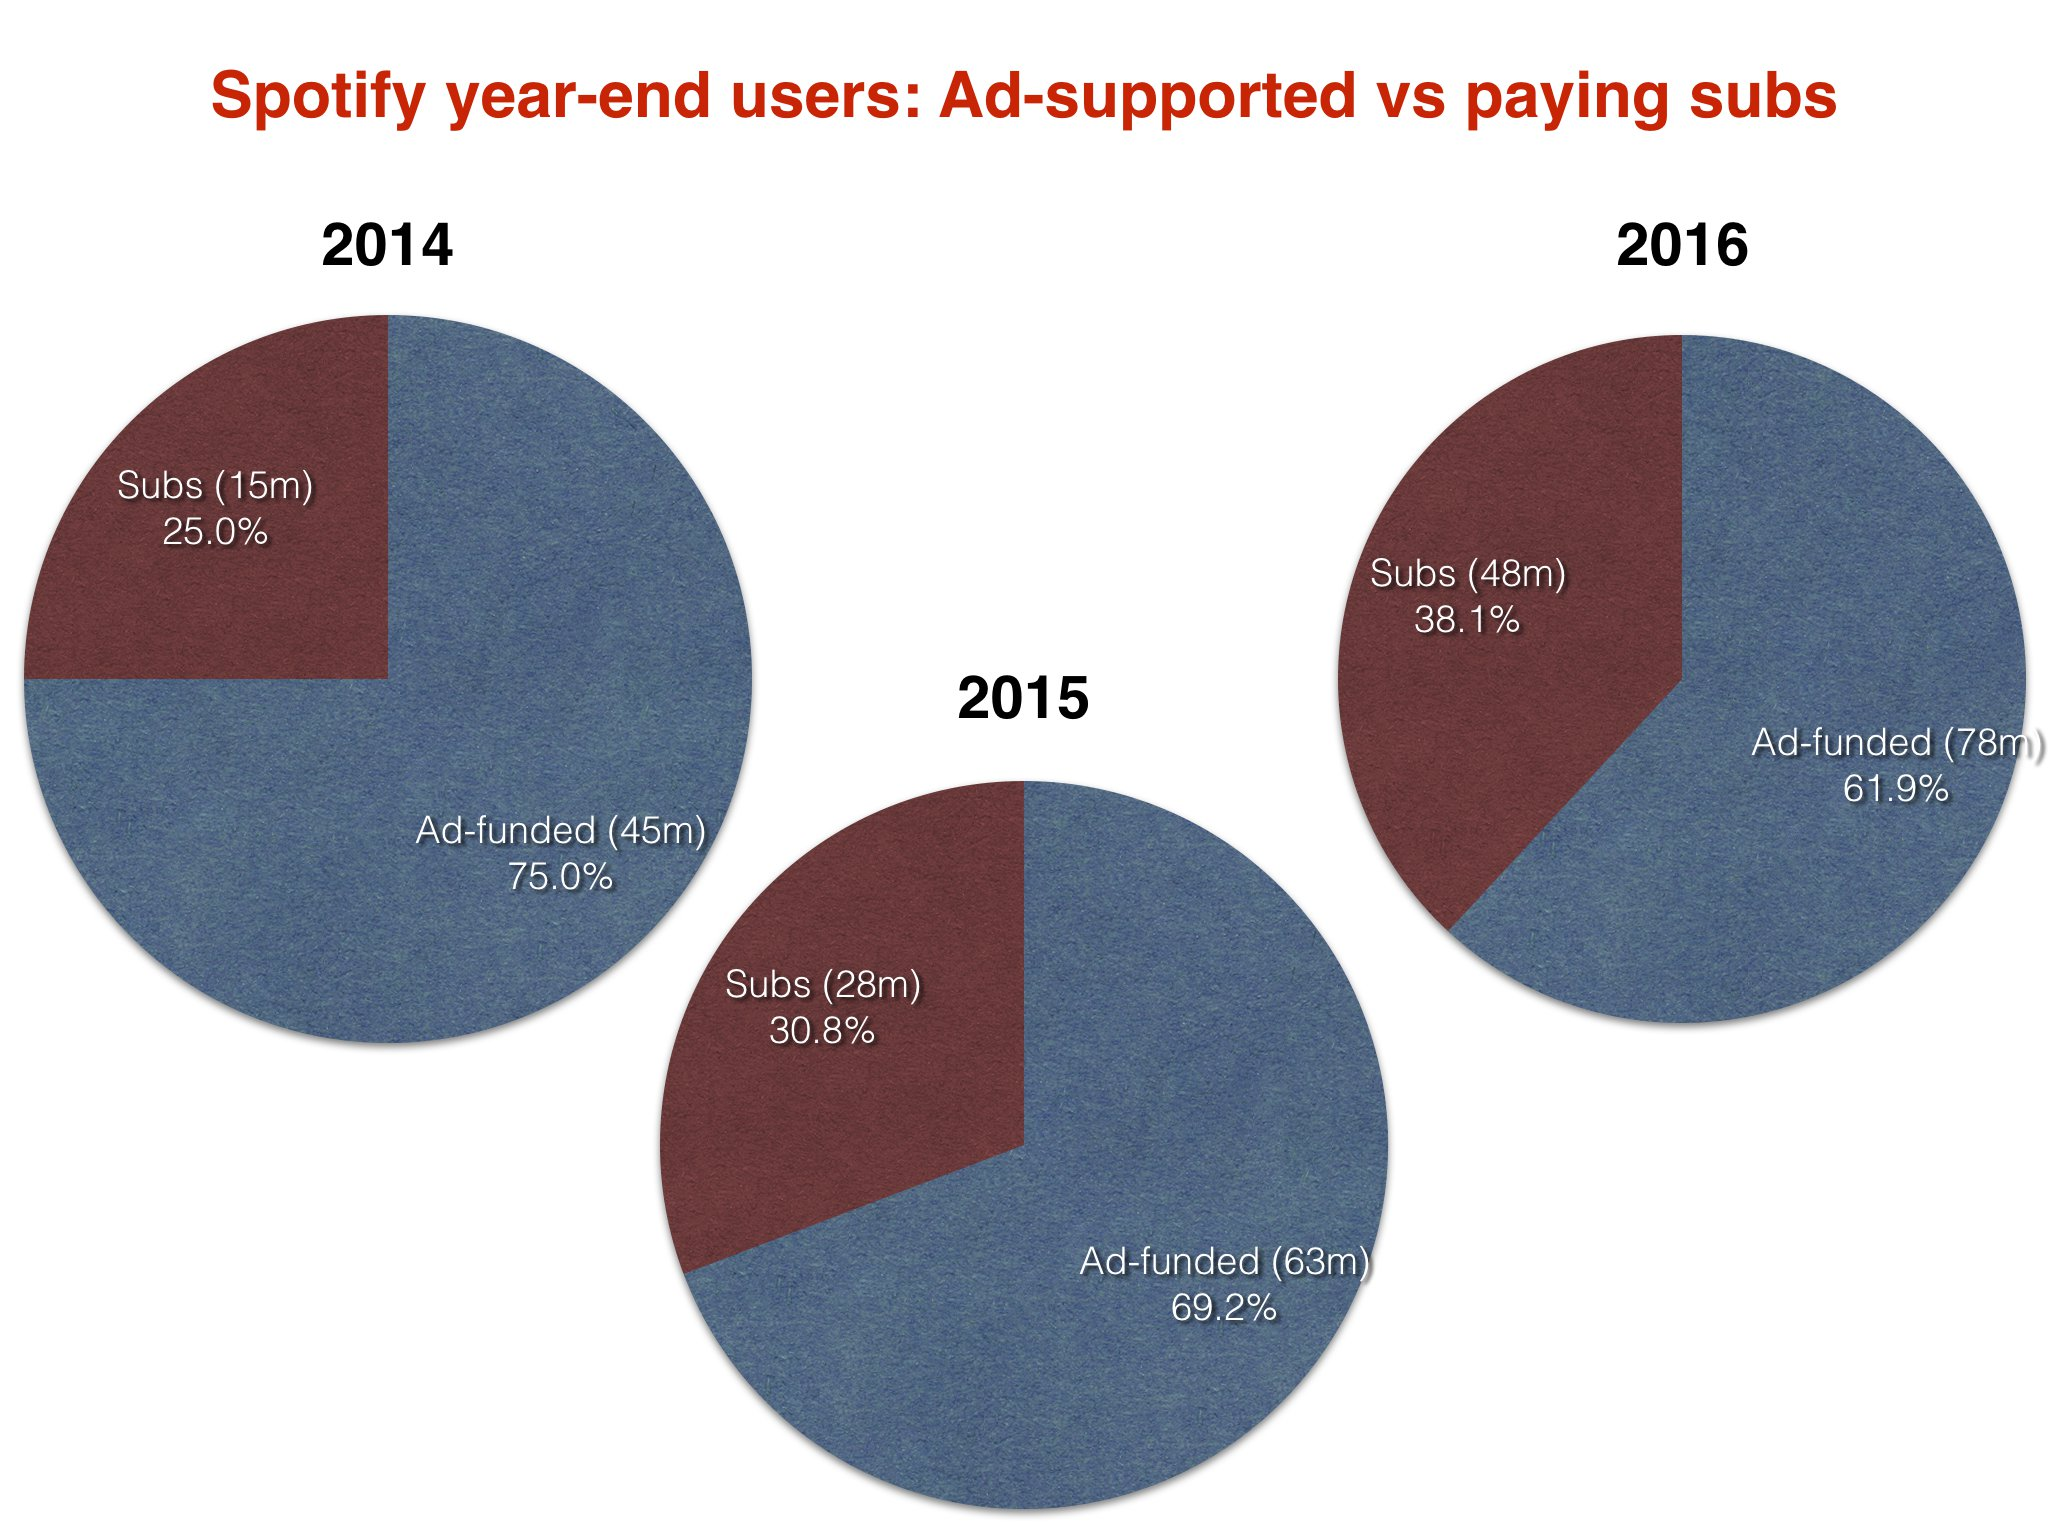 Spotify's average subscriber is paying $30 a year less than they